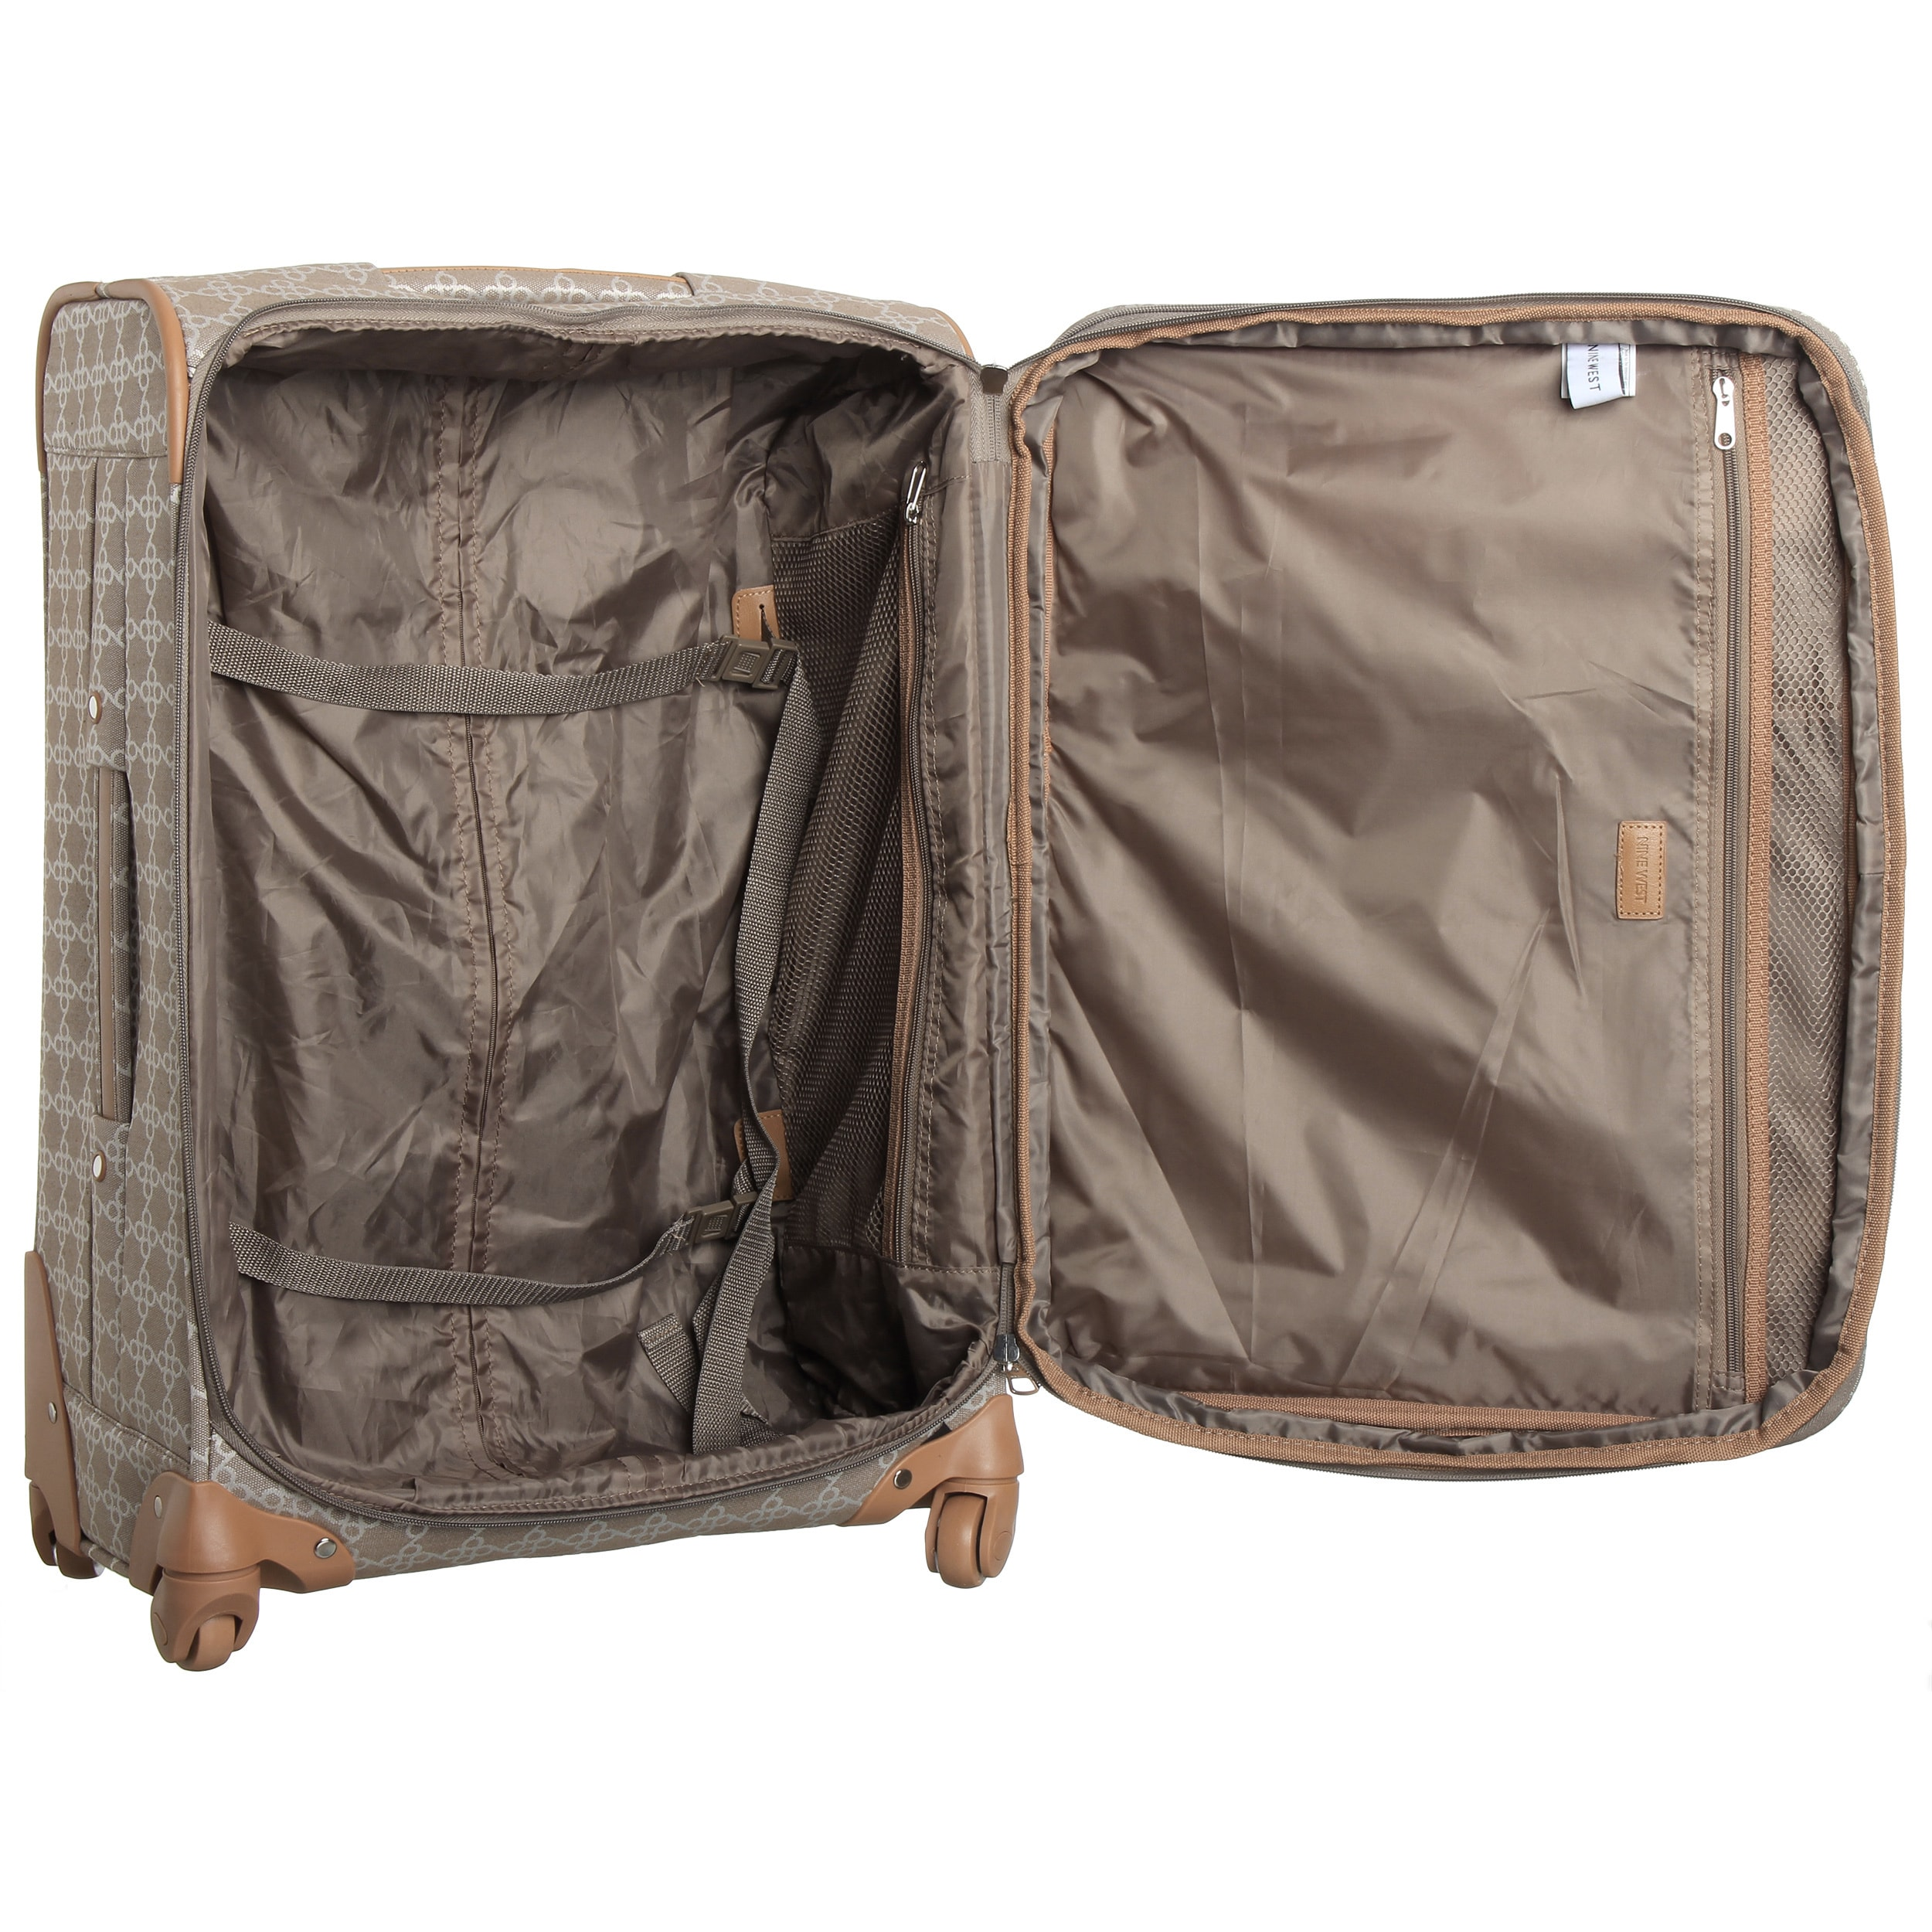 48273d9e3 Shop Nine West Addison 24-inch Medium Expandable Spinner Suitcase - Free  Shipping Today - Overstock - 9350073